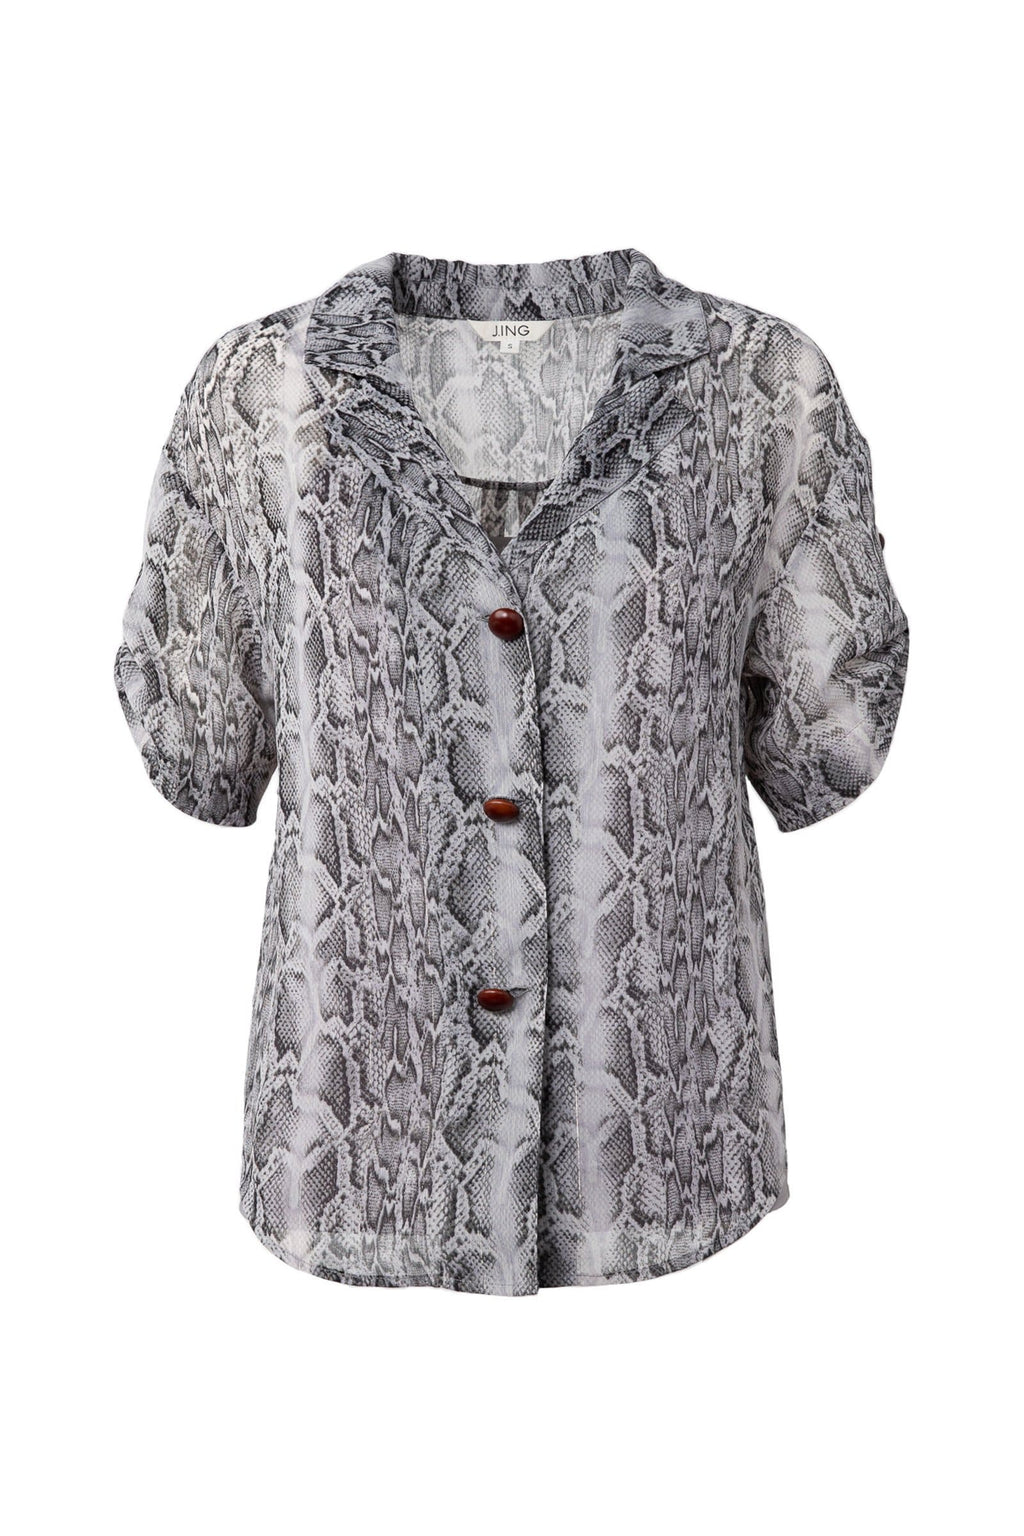 Snakeskin womens button up shirt by j.ing